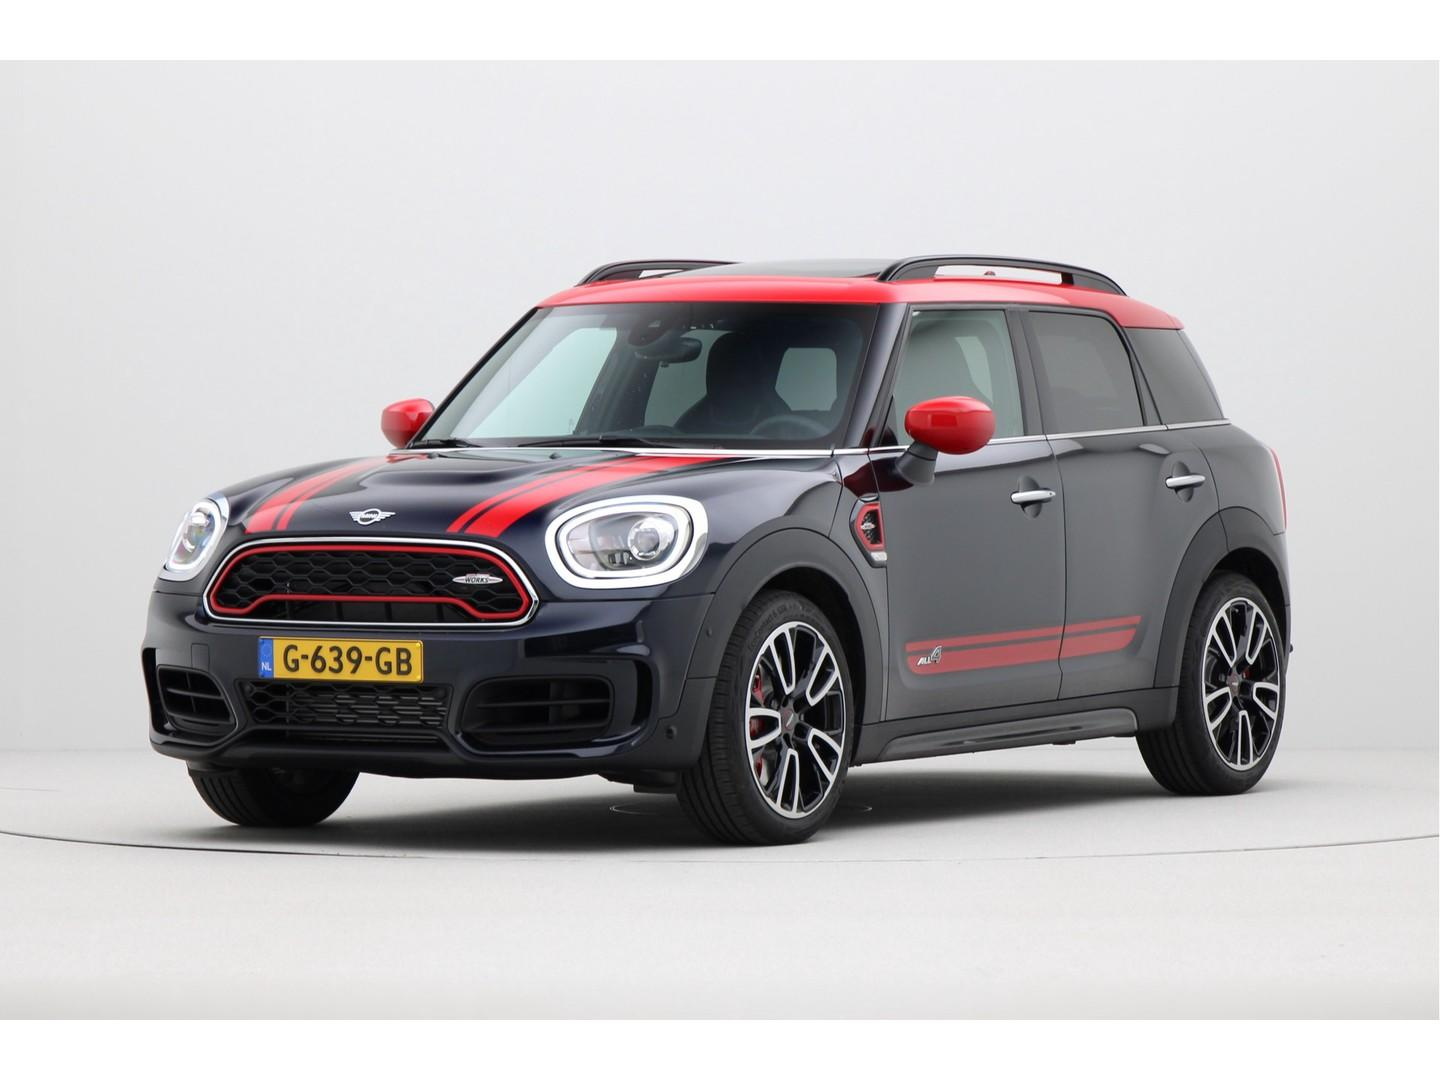 Mini Countryman 2.0 john cooper works all4 chili 306 pk